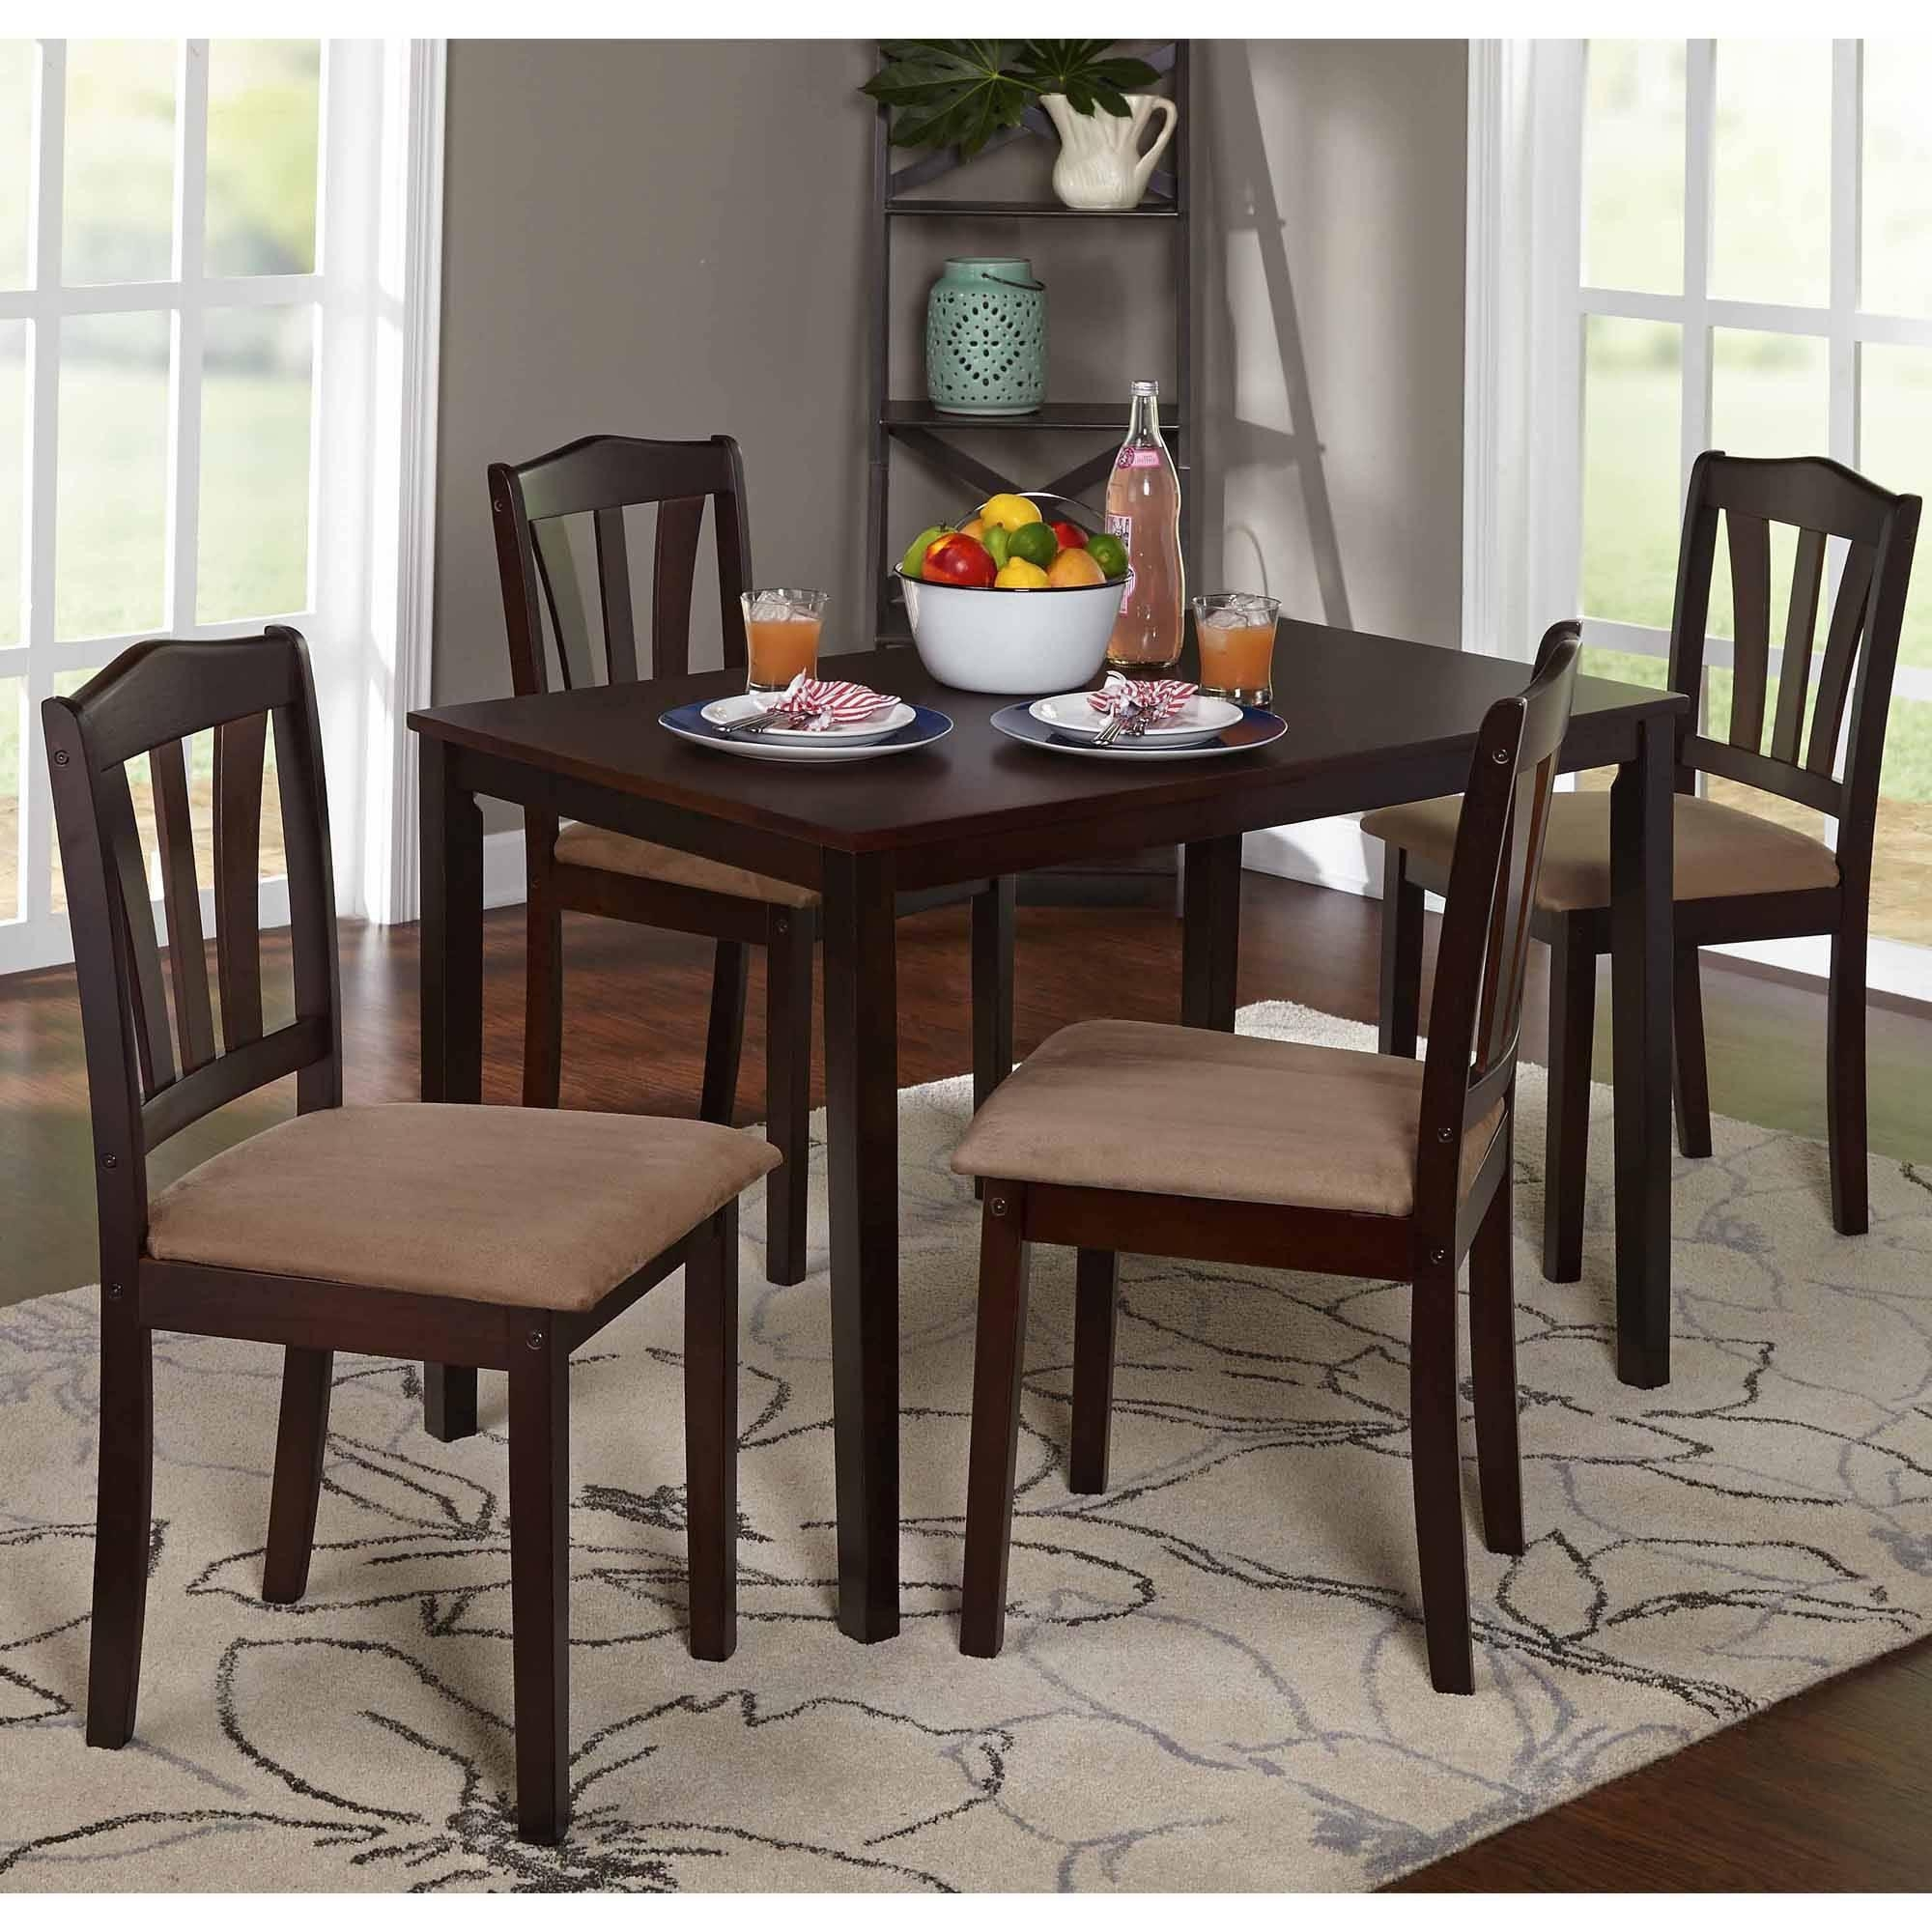 cheap dining room sets under 100 perfect dining room set under 200 bed nice 100 15 300 cheap archive layjao 3086